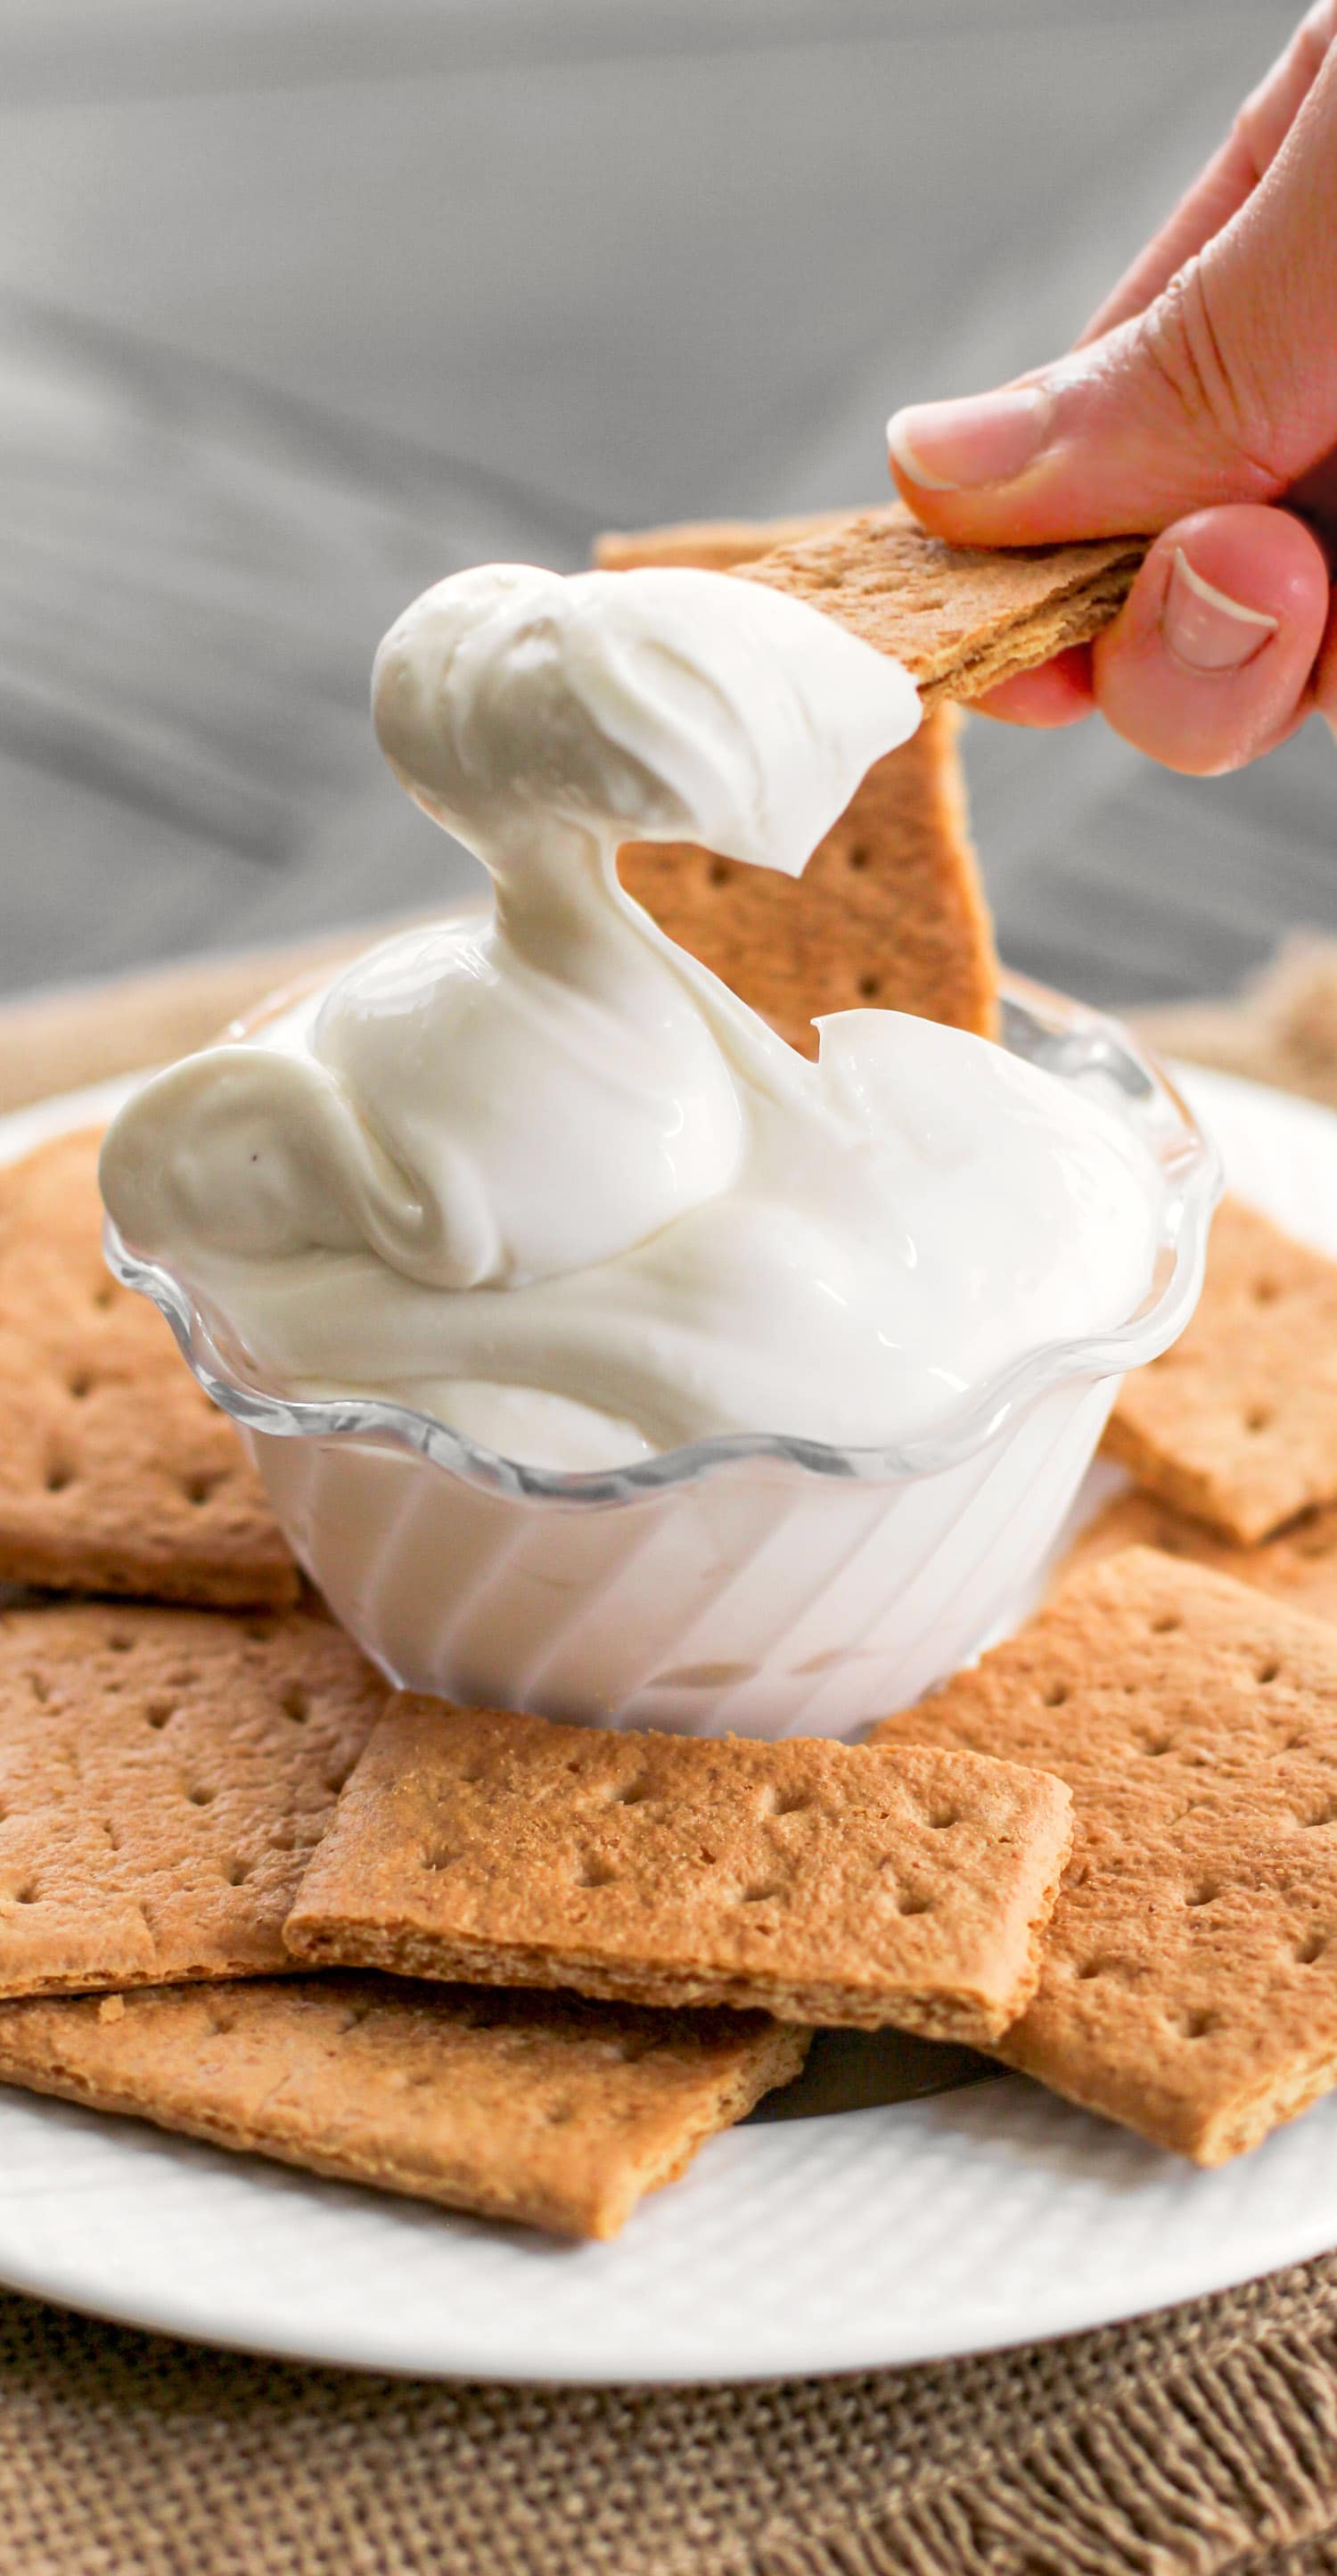 This 90-calorie Cheesecake Dip is ultra creamy, sweet, and satisfying. It tastes just like cheesecake batter, except it's sugar free, low fat, low carb, and high protein! All you need are 4 ingredients and a few minutes to make this secretly healthy, no-bake dessert dip!